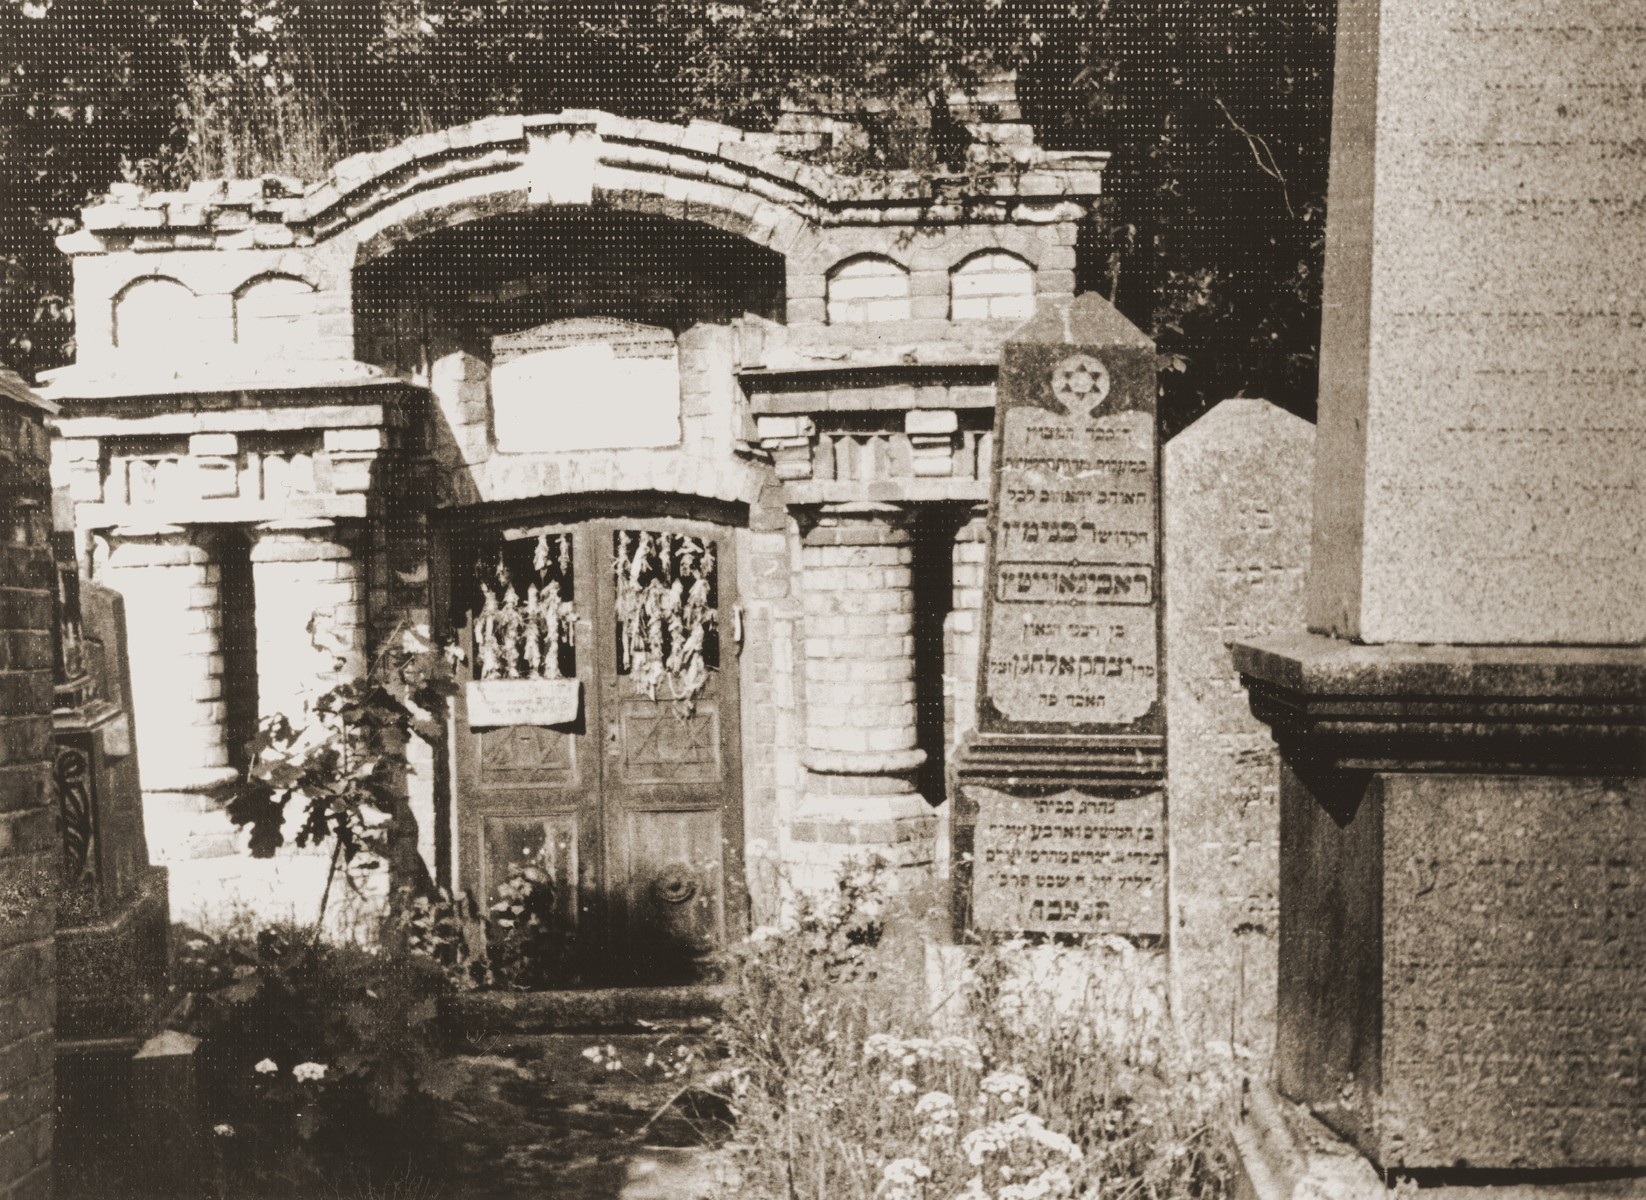 View of the Kovno Jewish cemetery with the tombstone of Rabbi Isaac Elhanan Spektor.